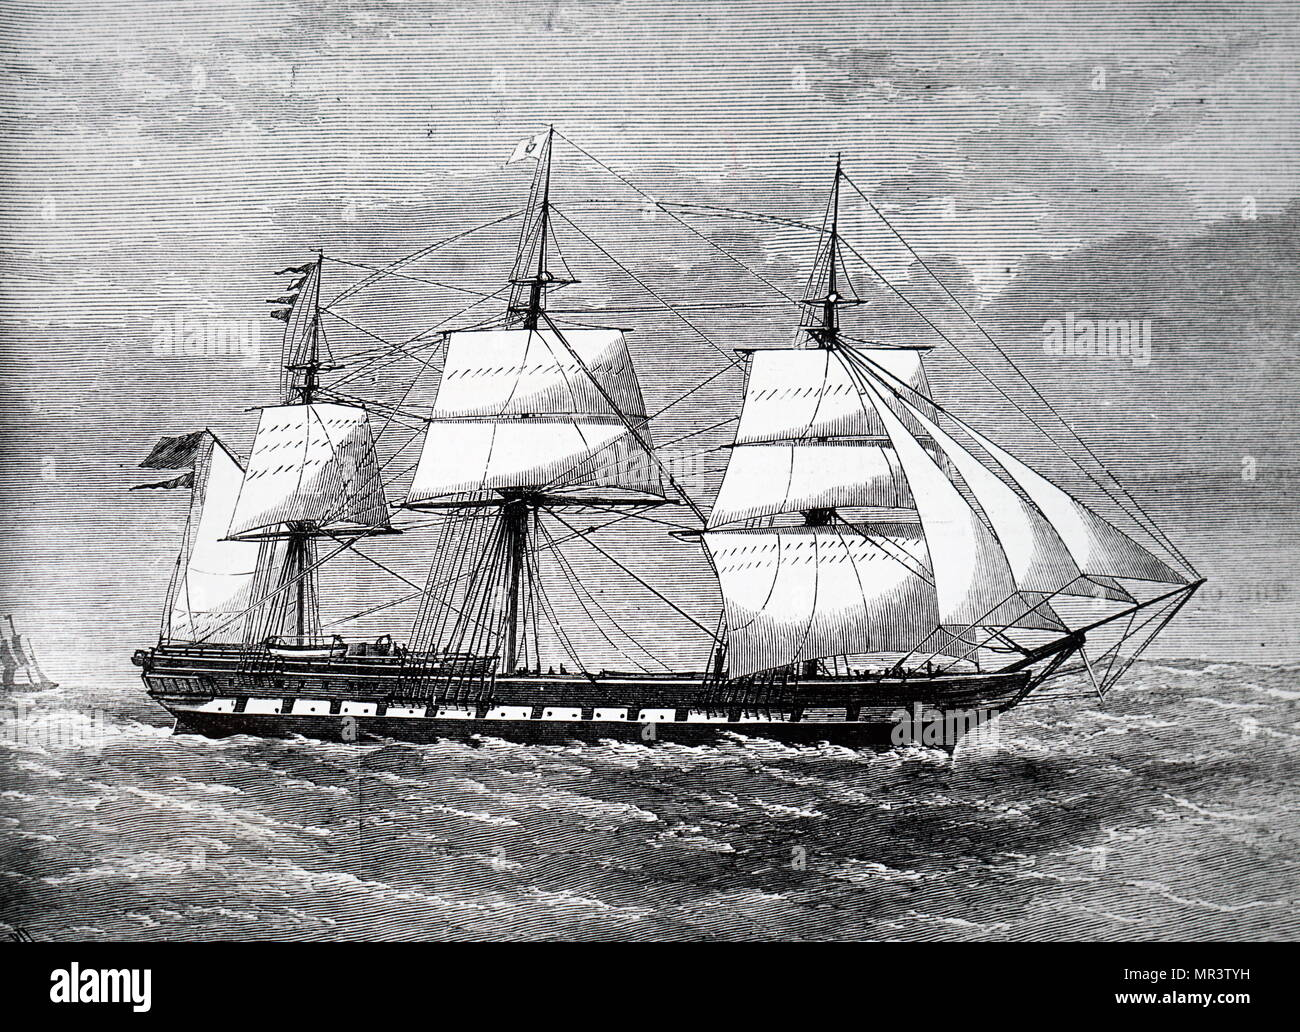 Illustration depicting the emigrant ship Gospatrick, which was destroyed at sea by fire. Dated 19th century - Stock Image